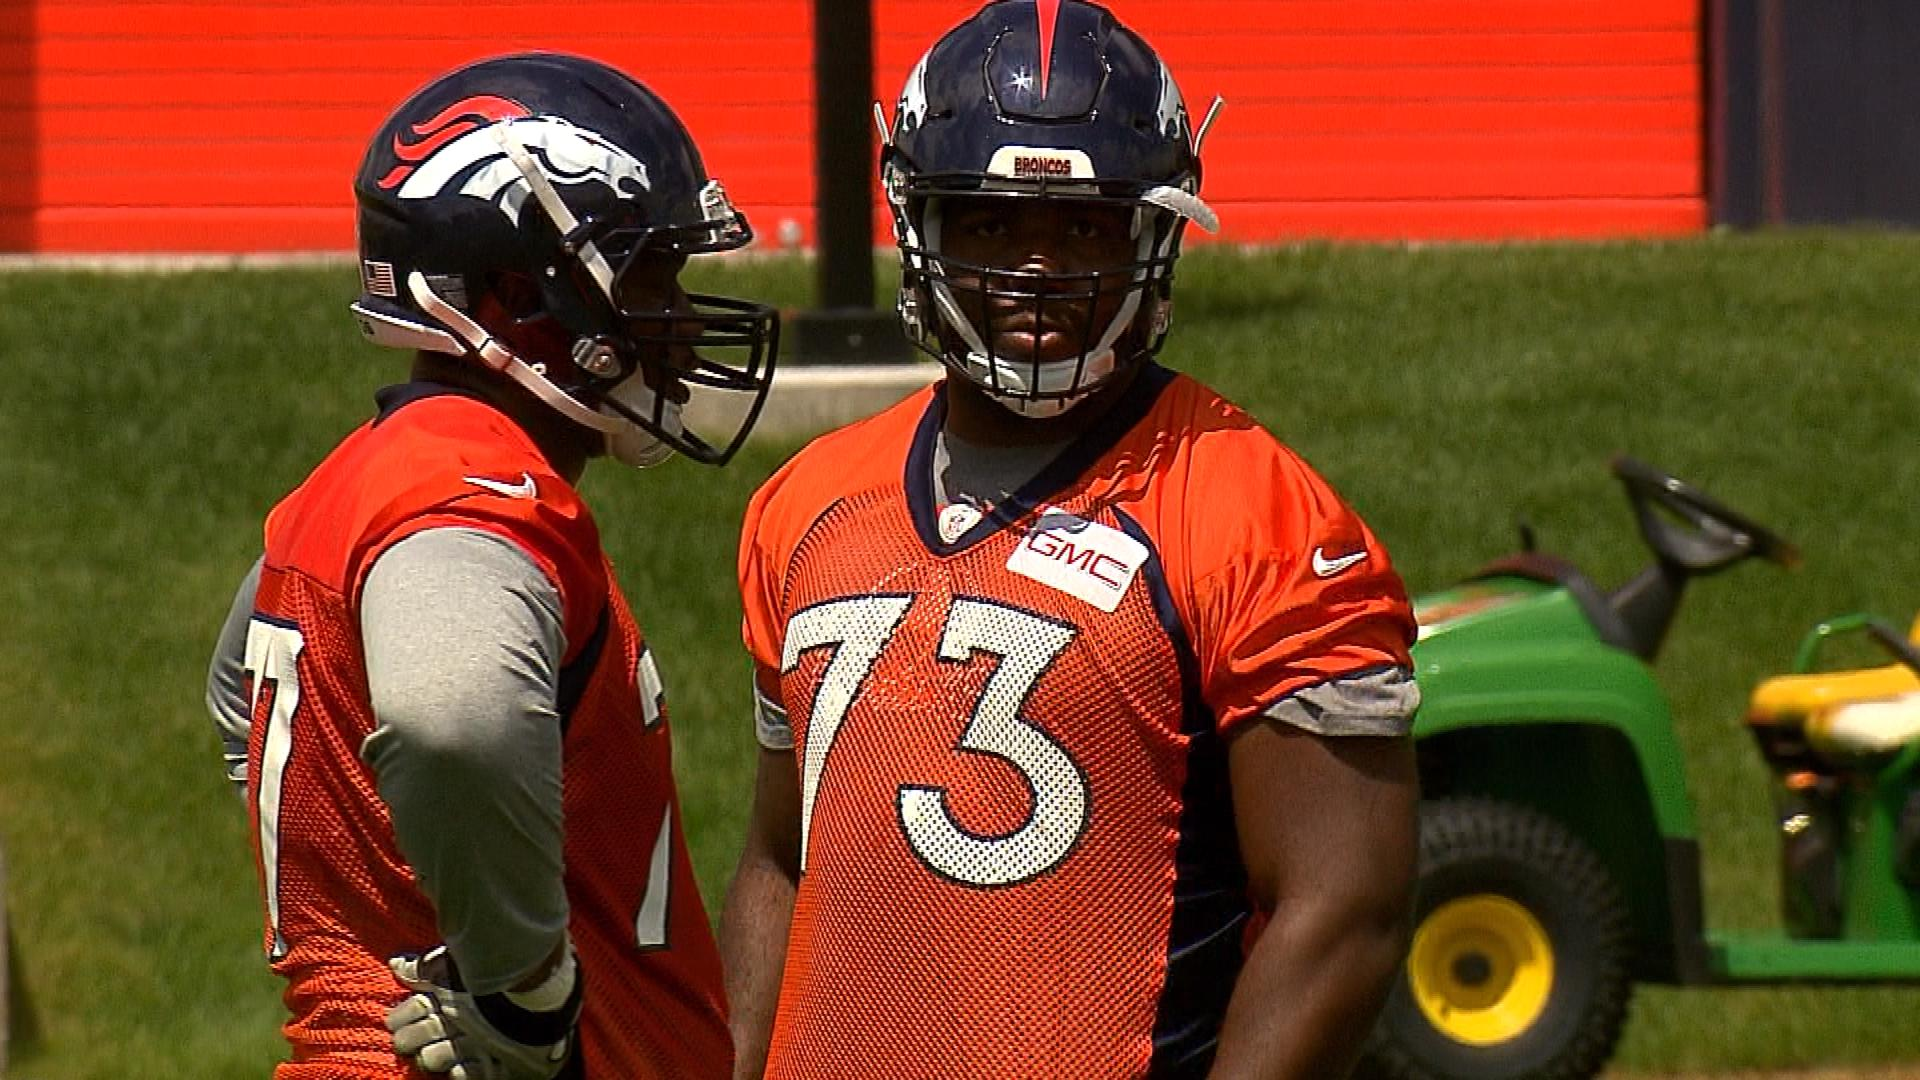 Russell Okung (credit: CBS)